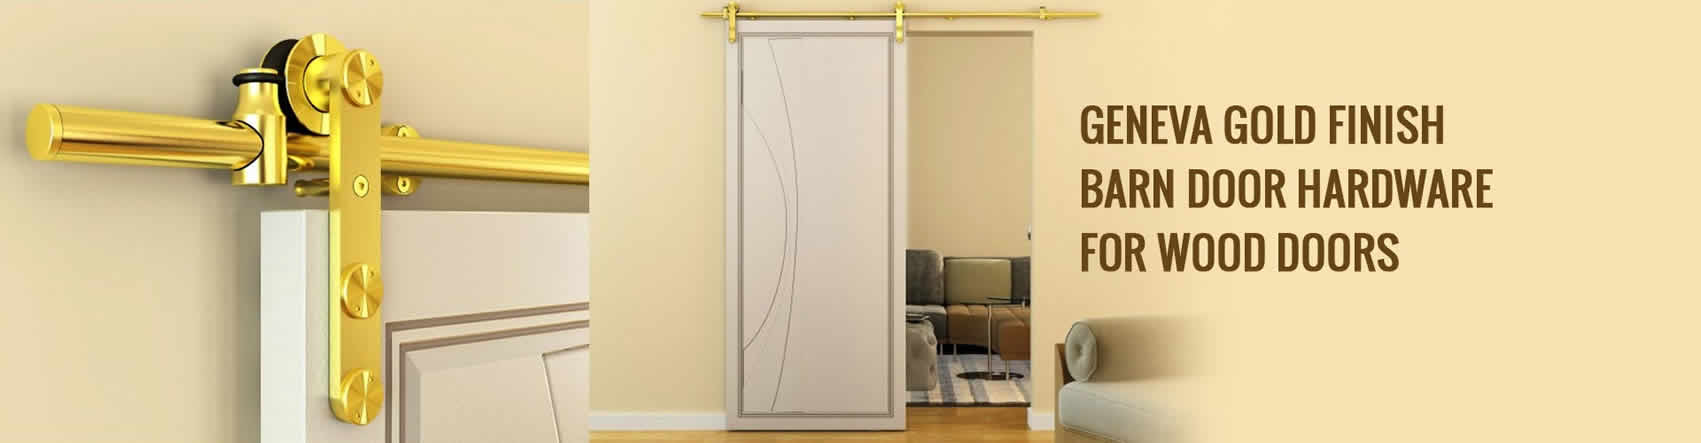 Geneva Gold Finish Barn Door Hardware for Wood Doors